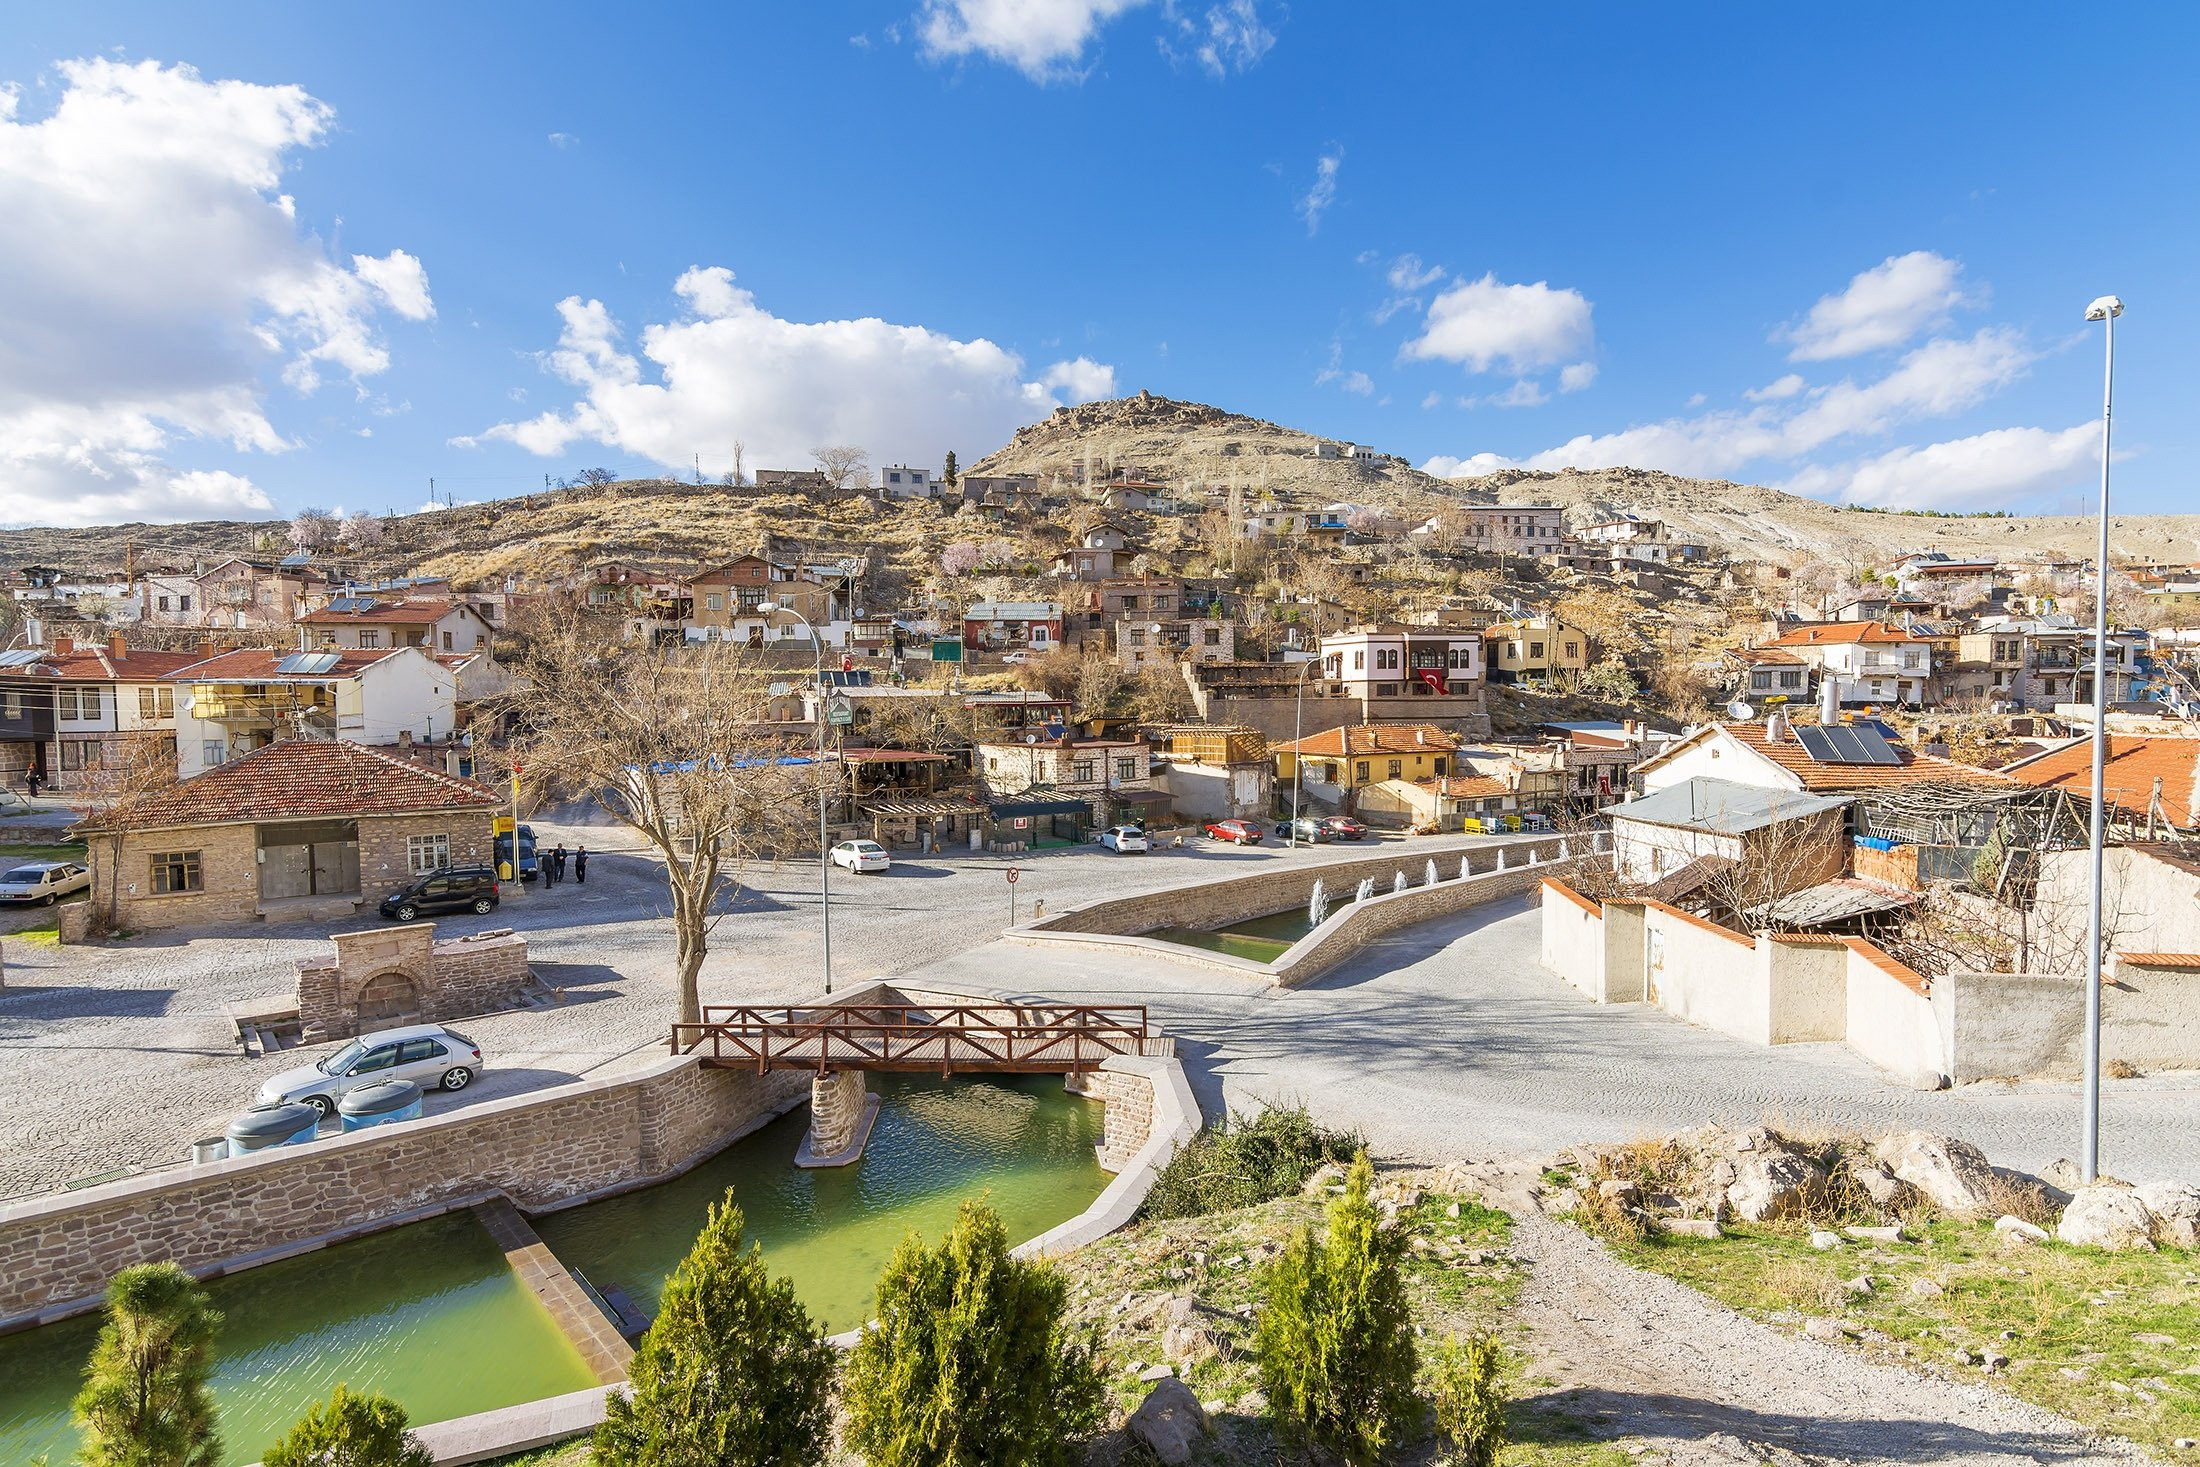 A view from the Sille Village, Konya, central Turkey, March 10, 2016. (Shutterstock Photo)